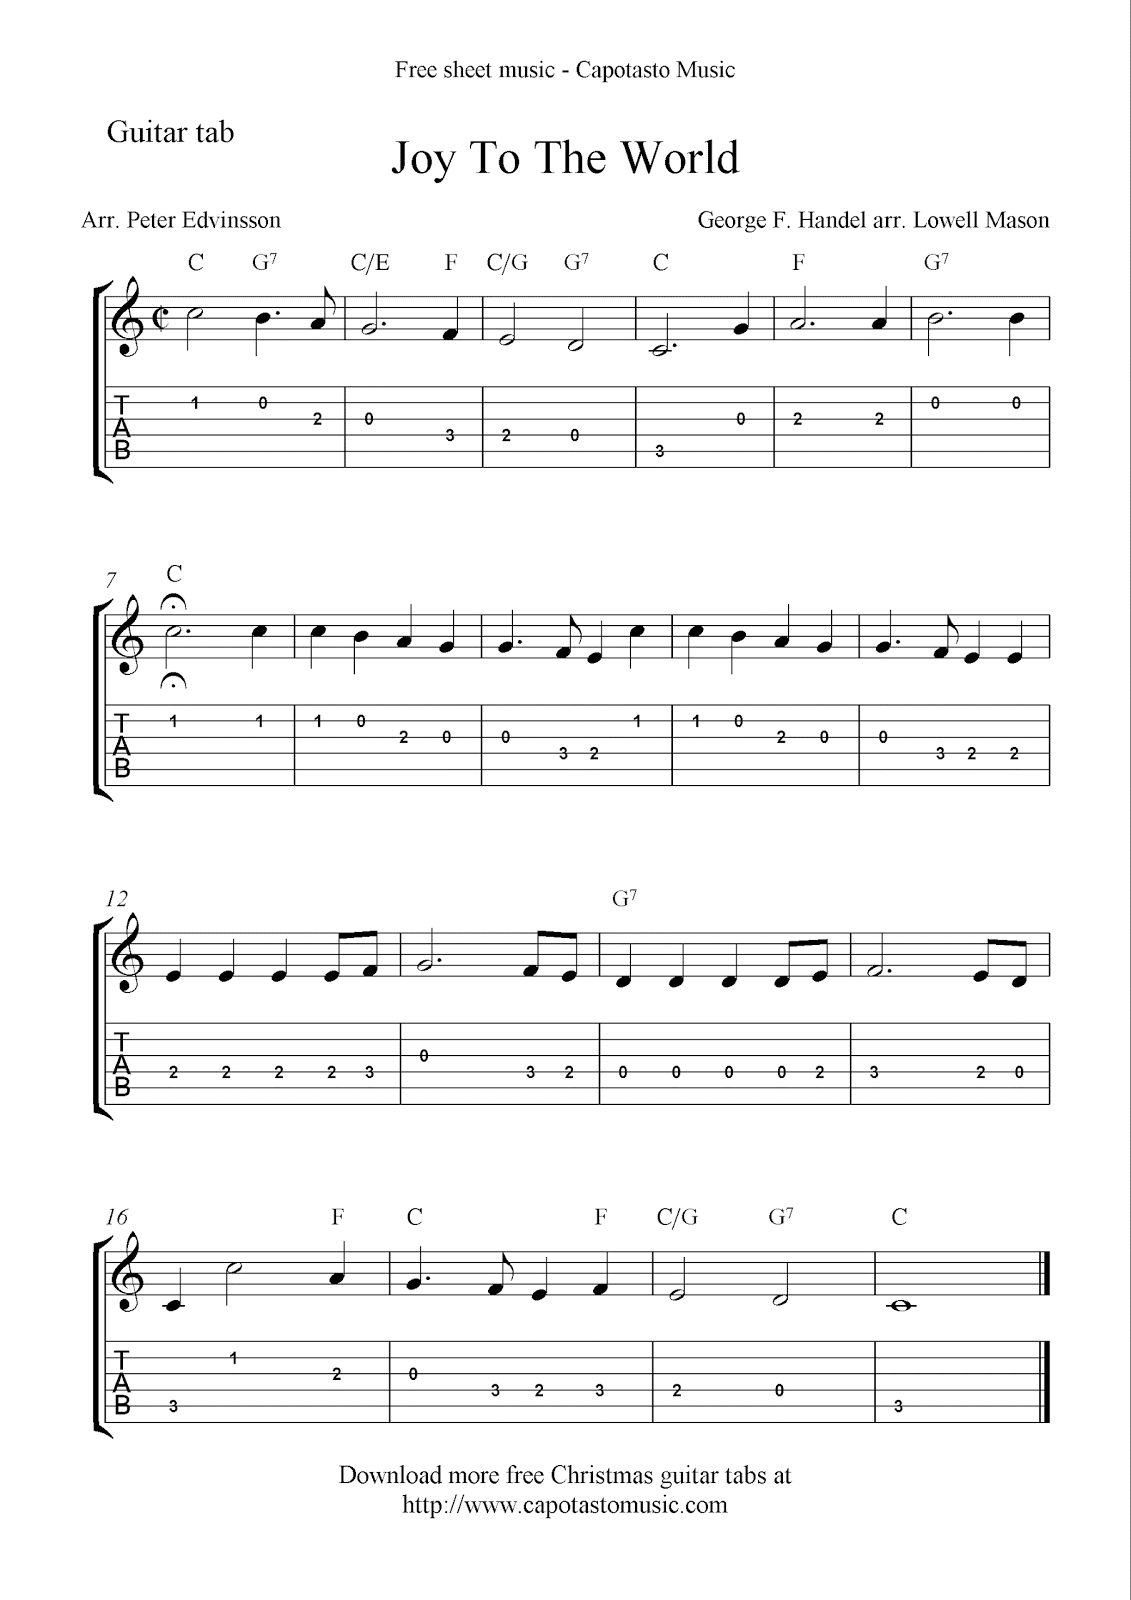 Joy To The World, free Christmas guitar sheet music and tablature